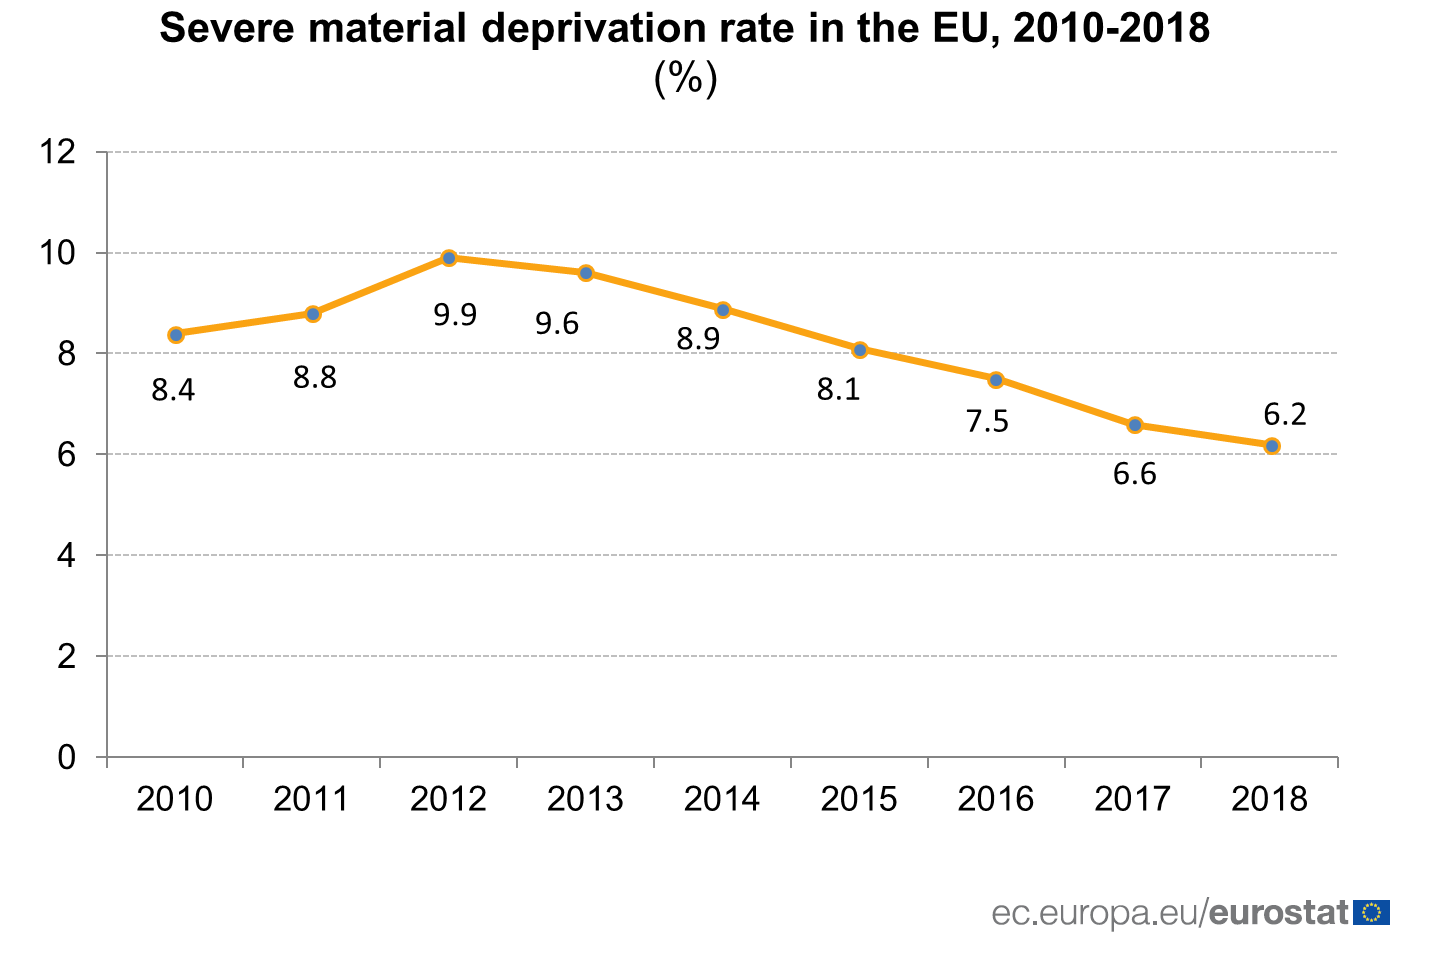 Chart of severe material deprivation rate in the EU, 2010 to 2018